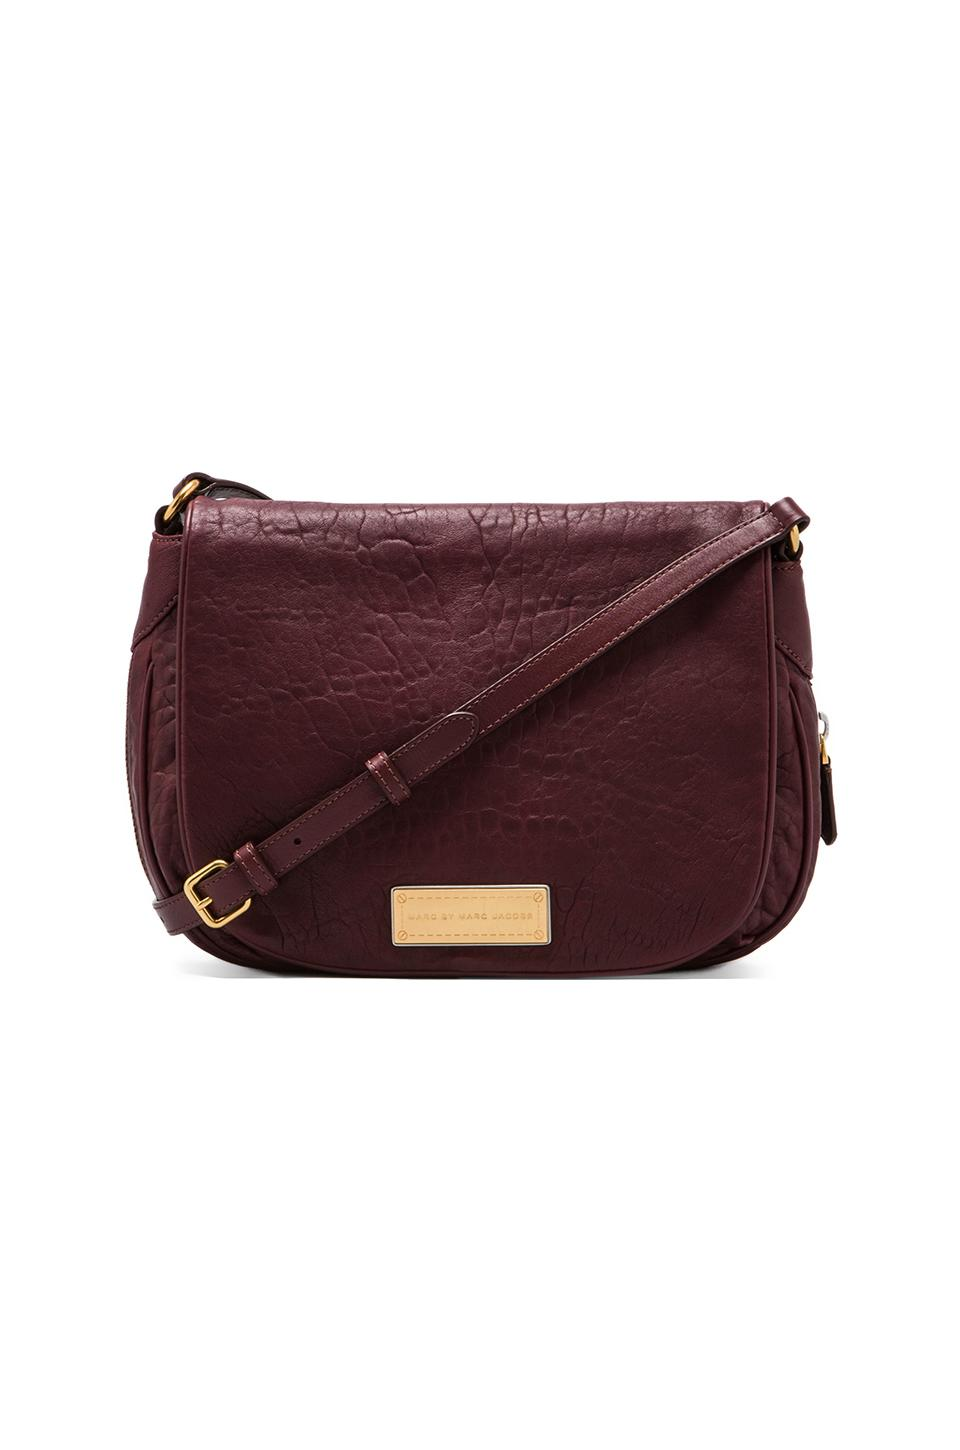 Marc by Marc Jacobs Washed Up The Nash Crossbody Bag in Cardamom Brown